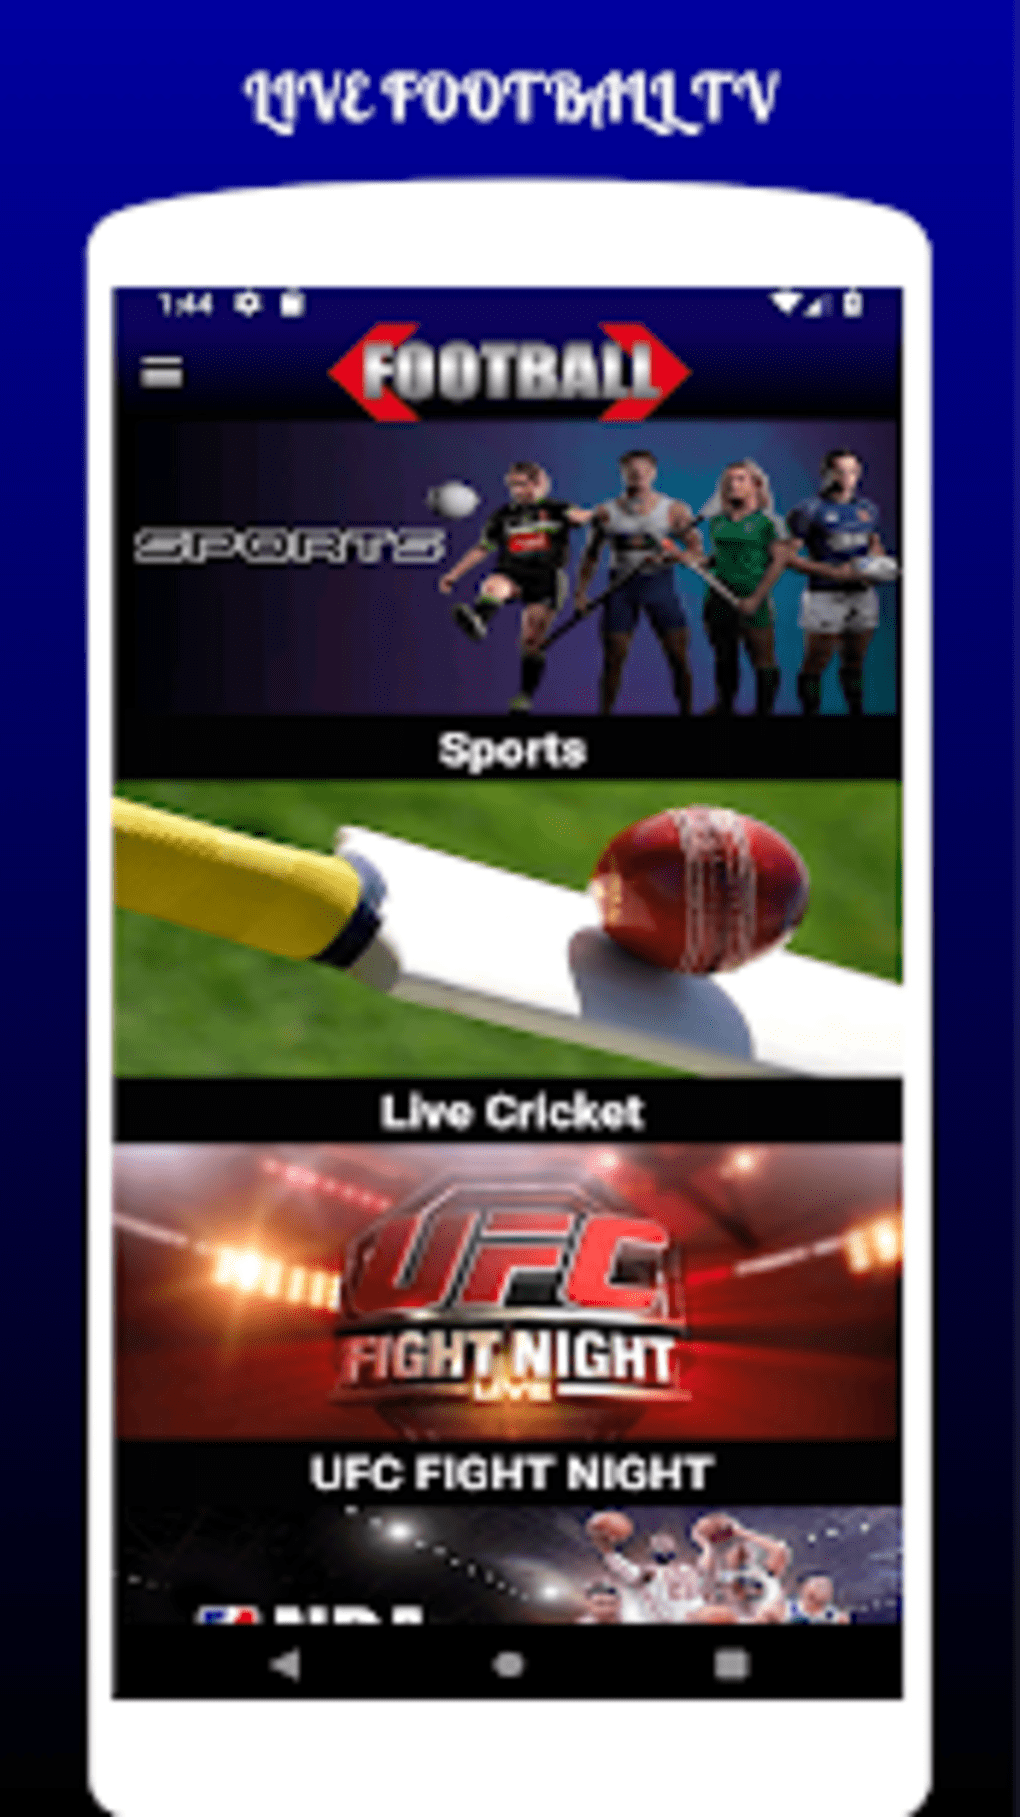 LIVE FOOTBALL TV STREAMING HD for Android - Download